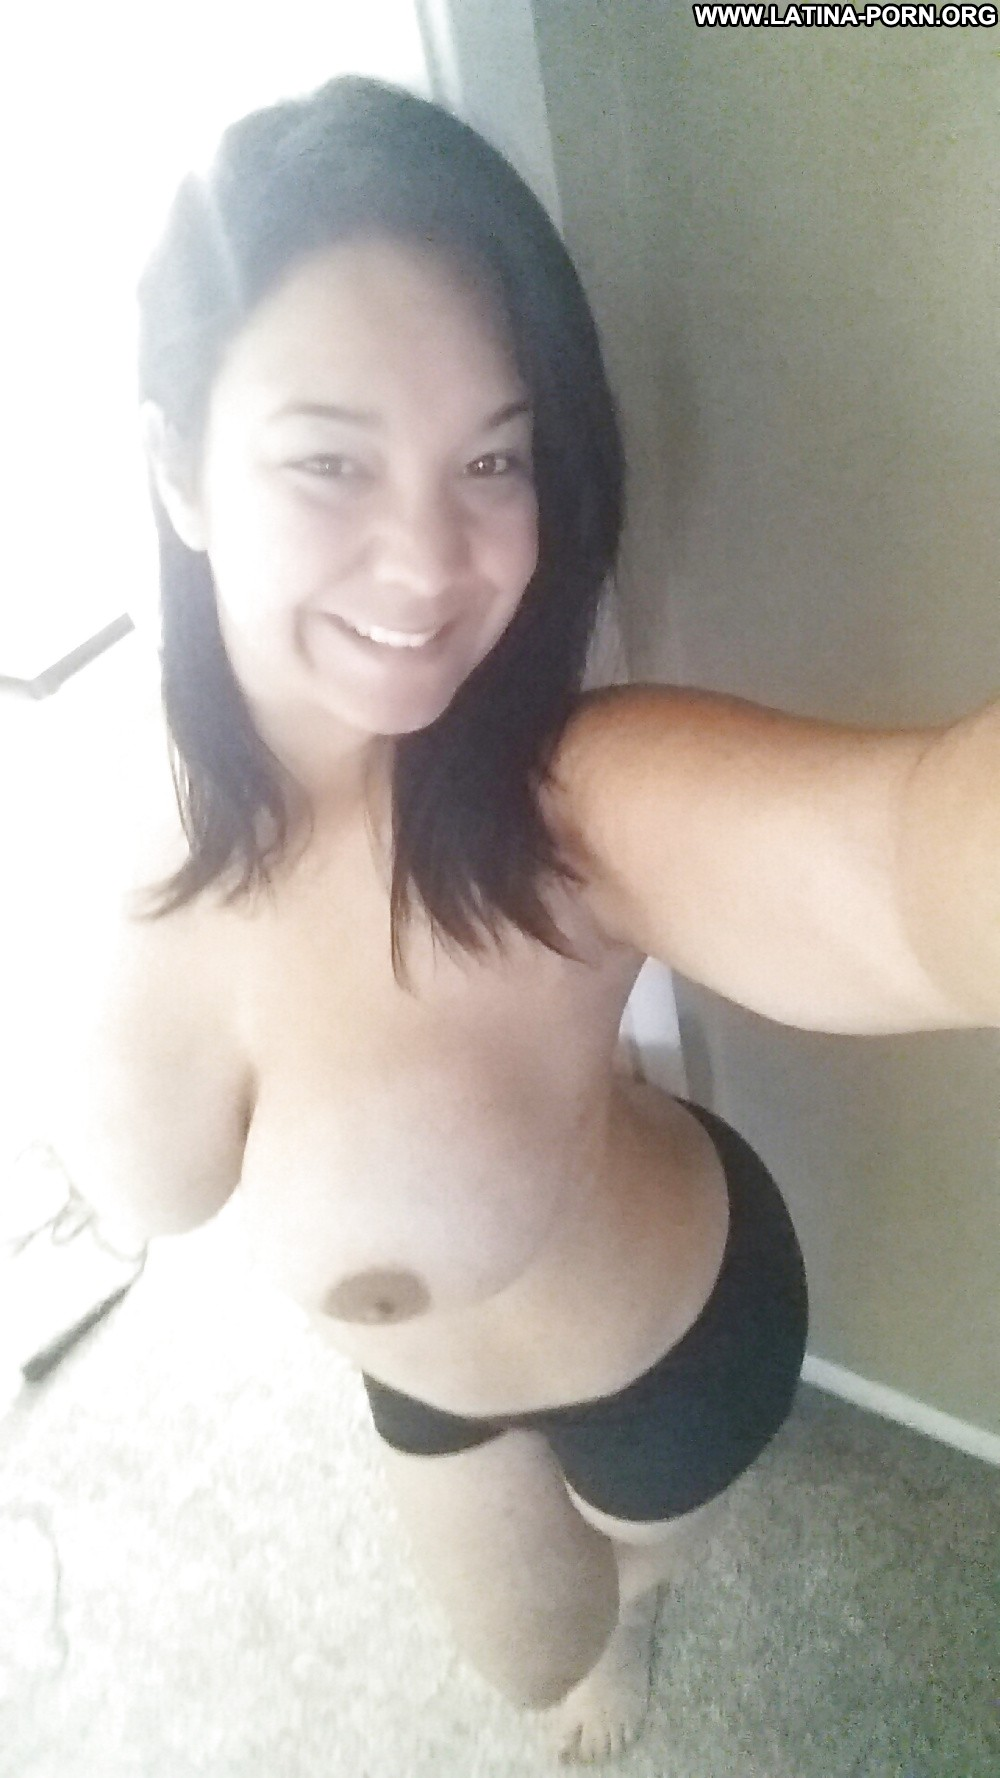 Latina tits pictures